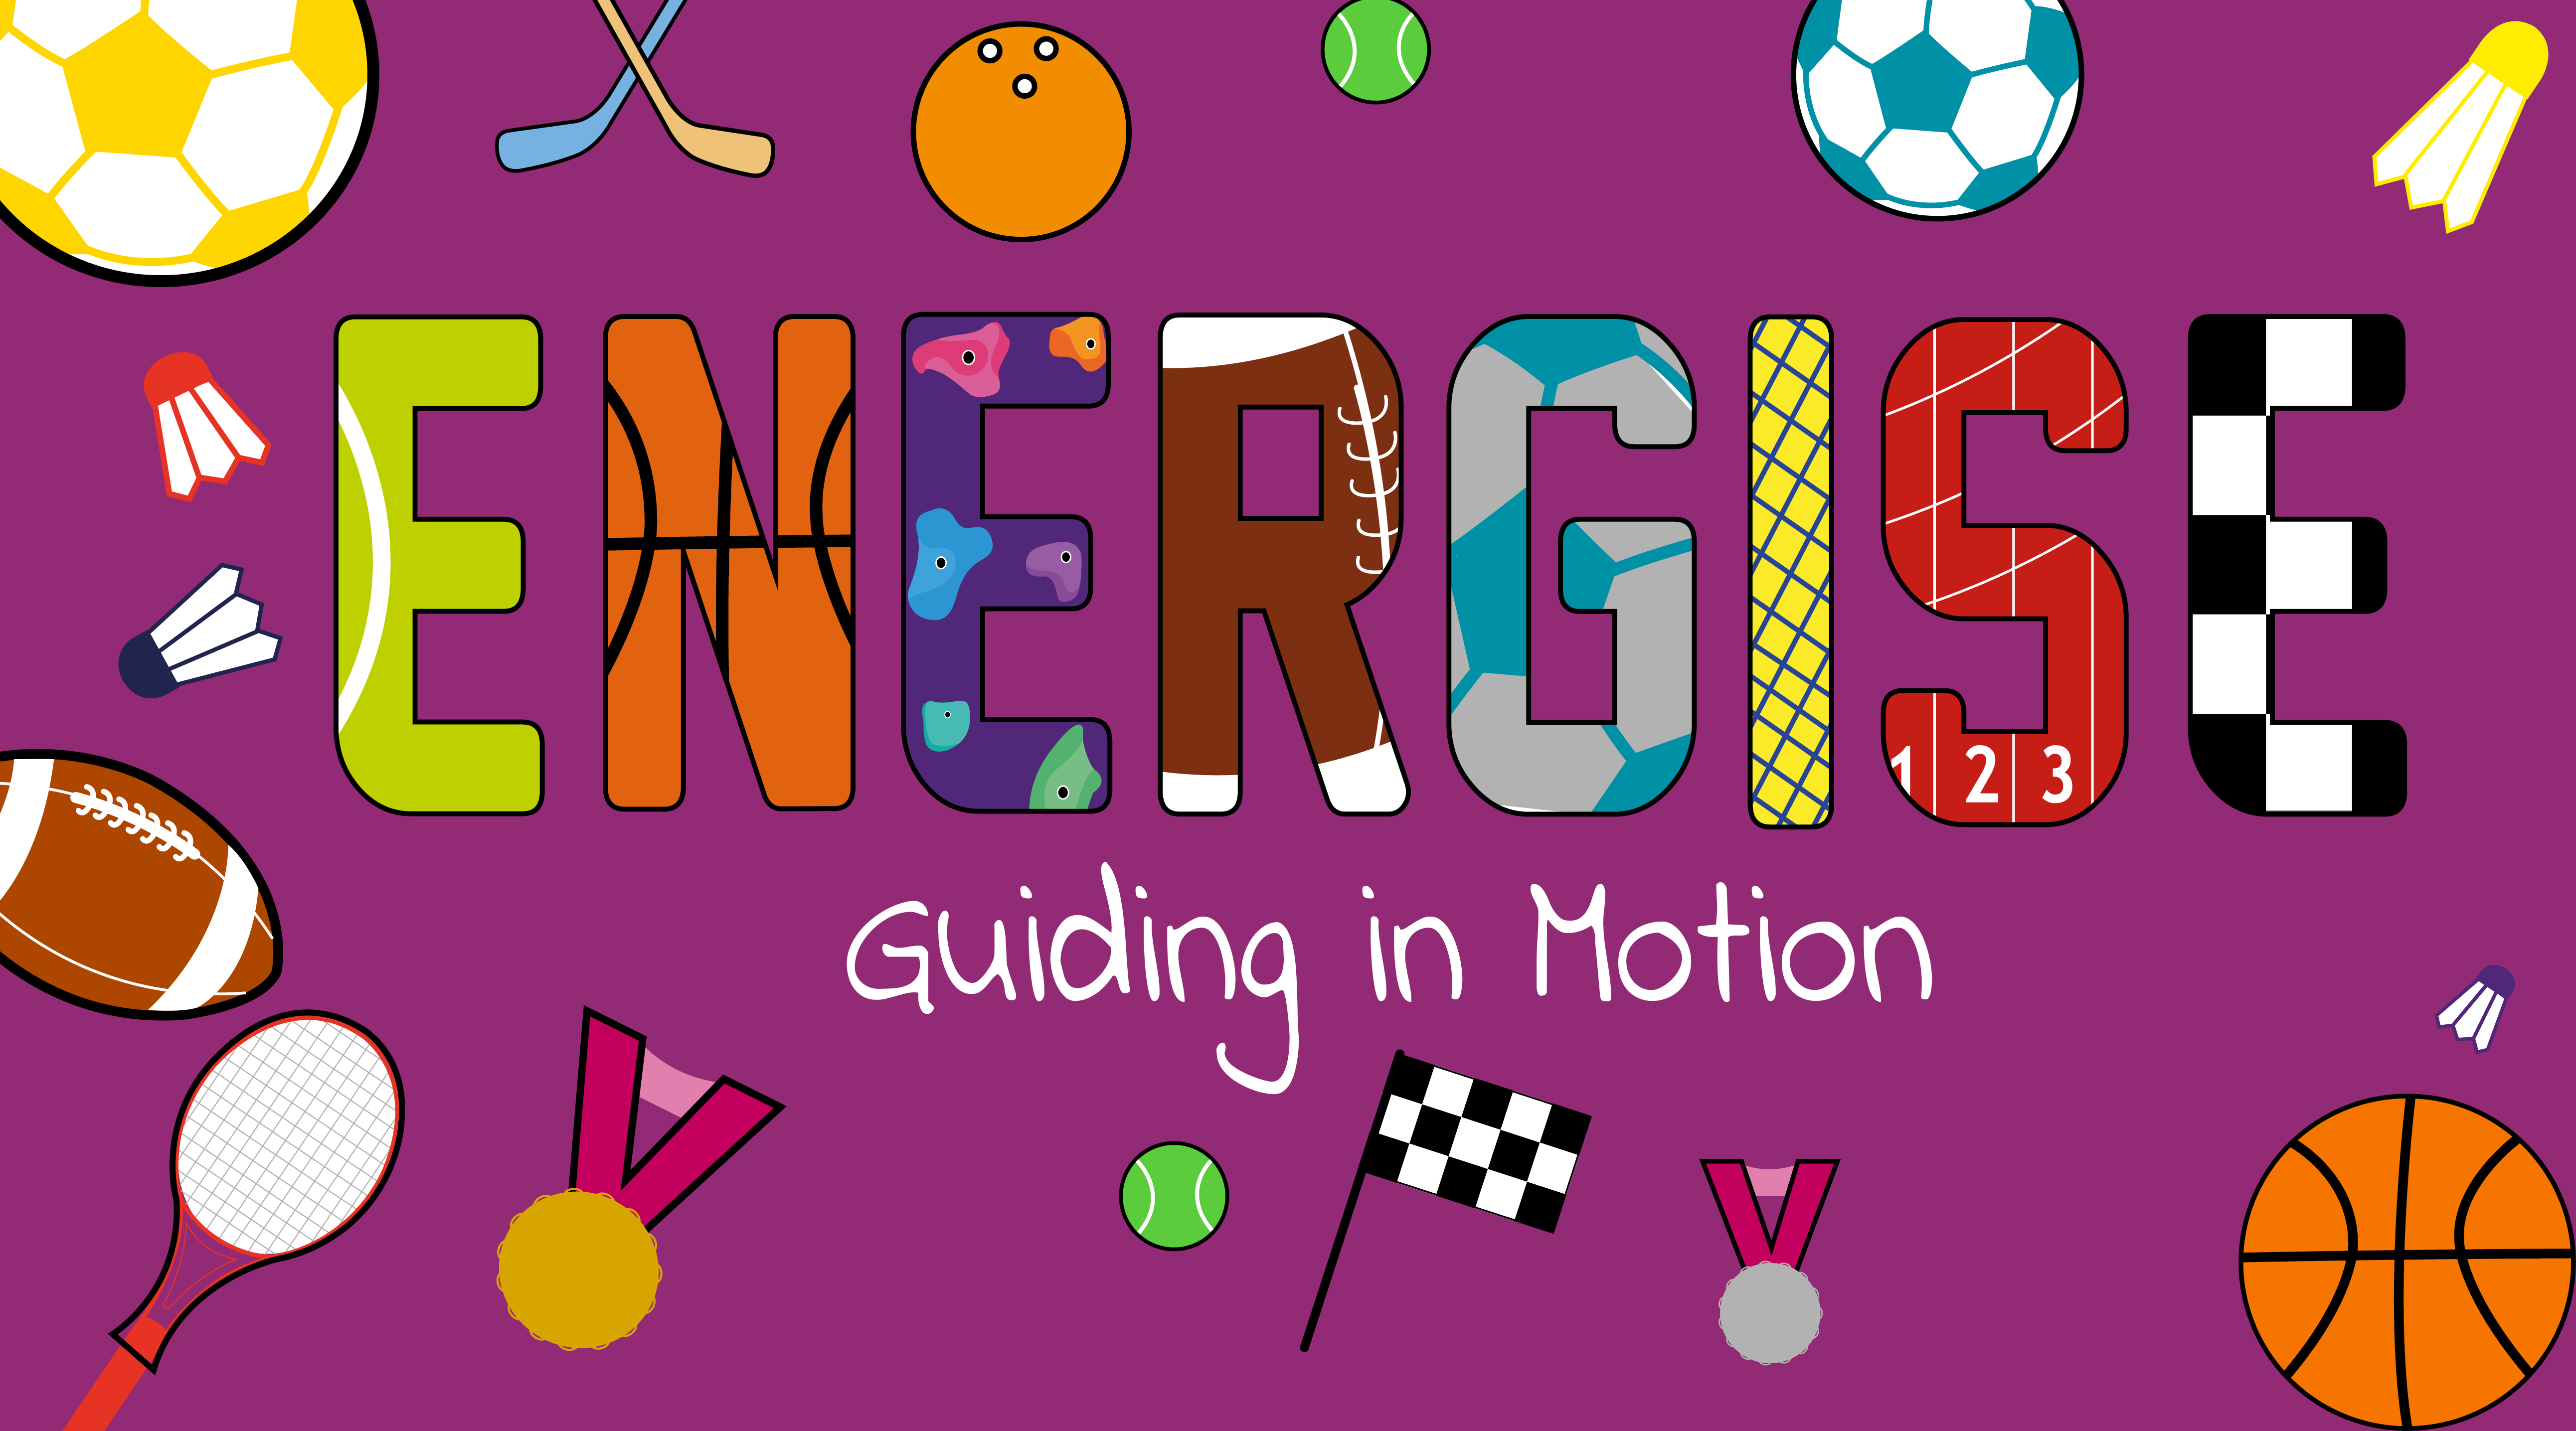 Volunteer at our Energise event!